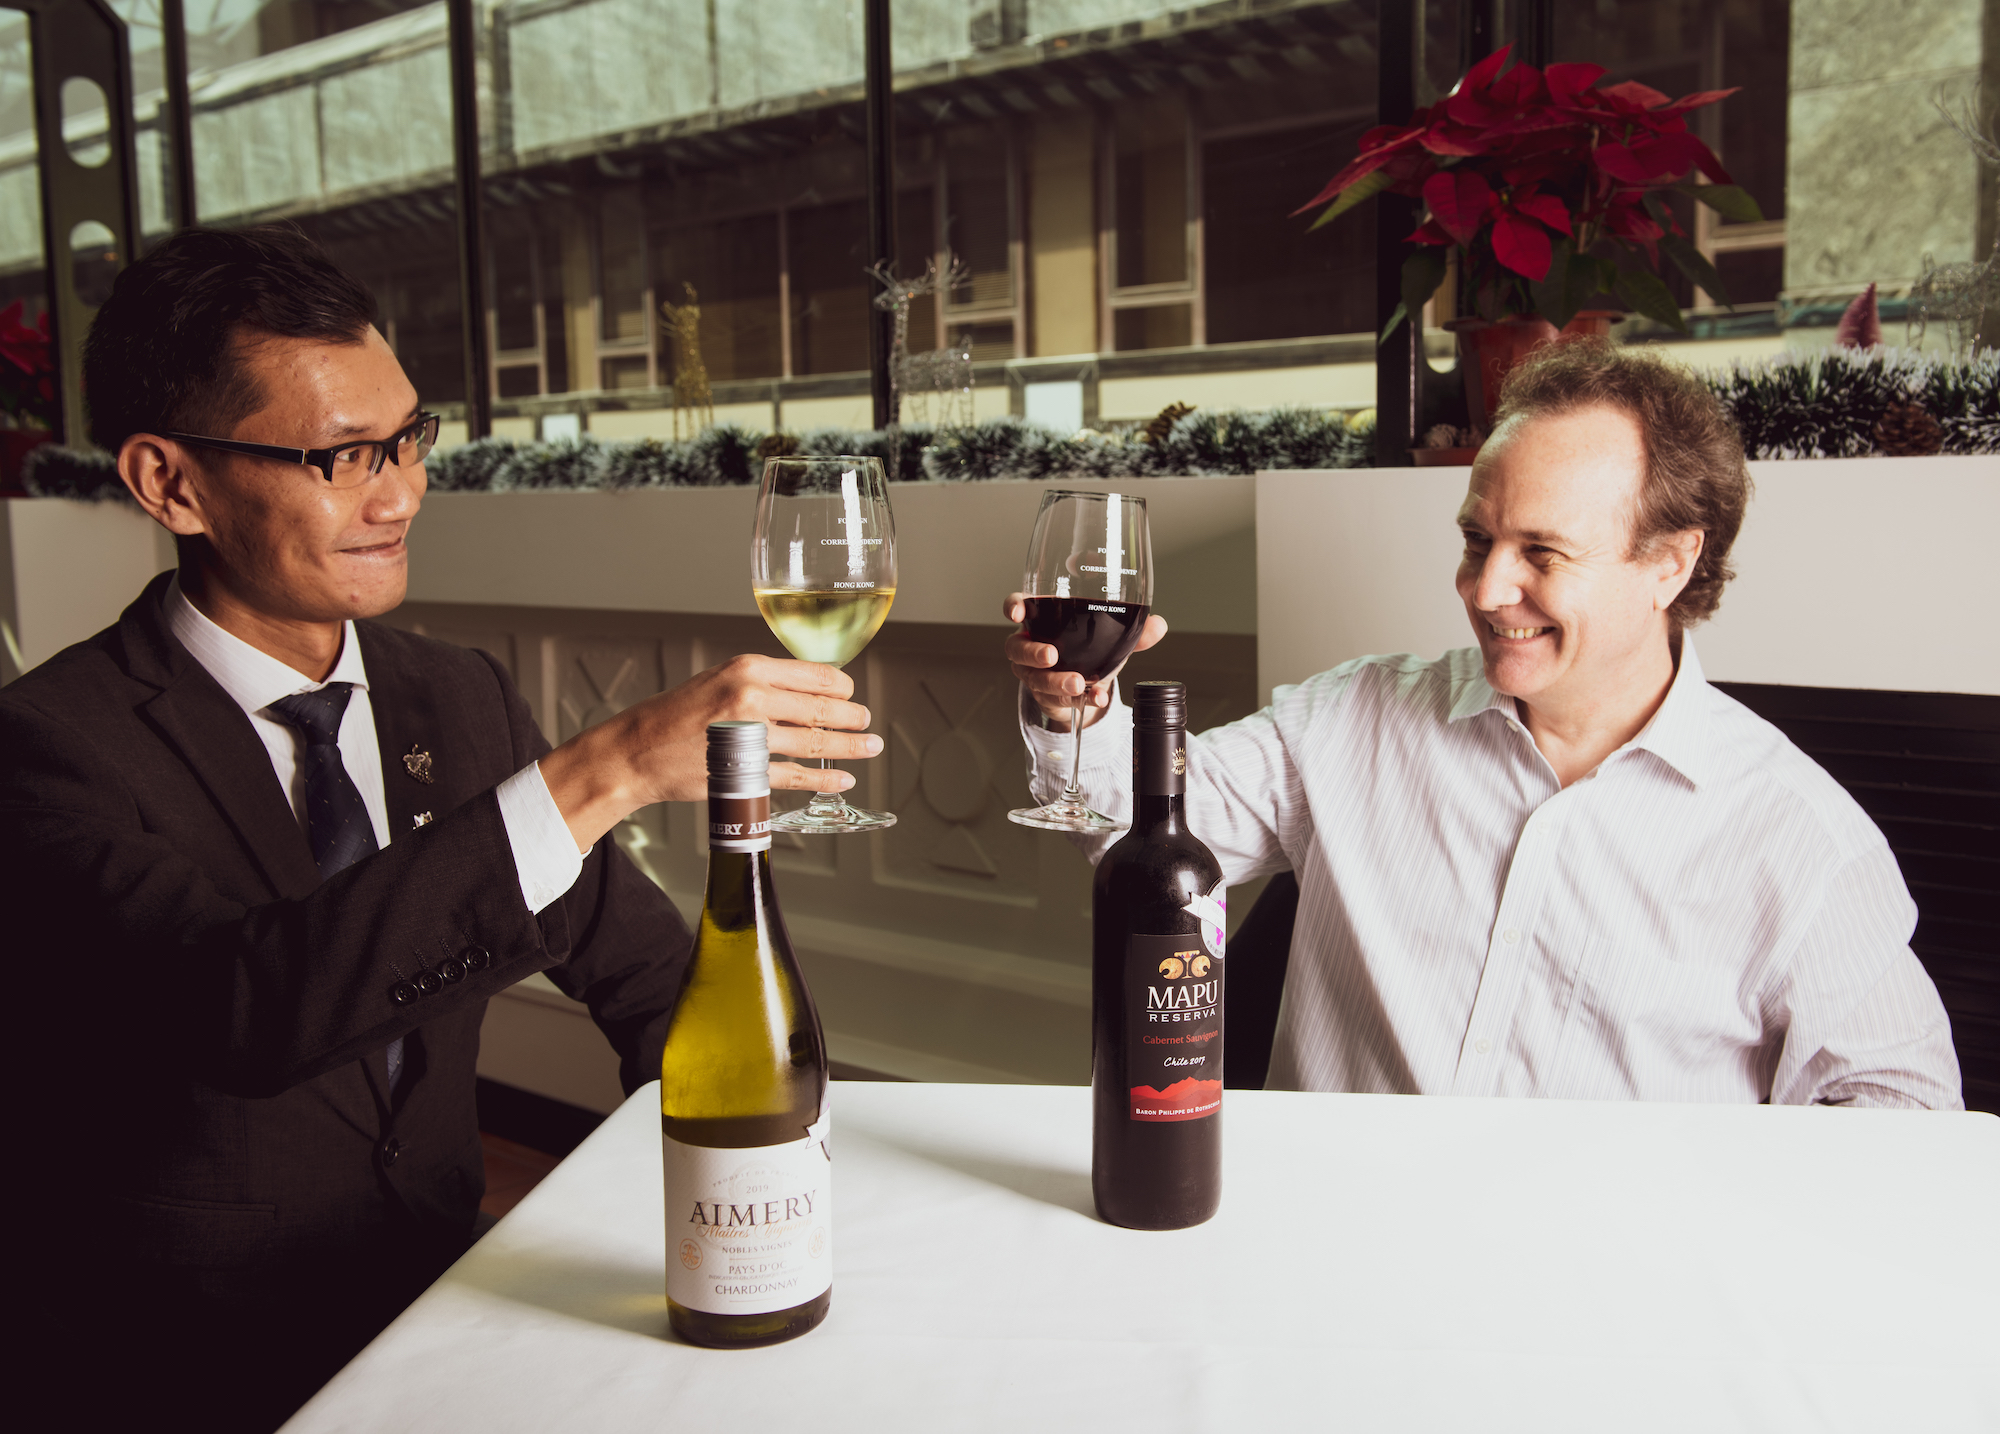 FCC Food & Beverage Manager Michael Chan (left) and Joël Leduc (right) toast to a great year of wine tasting.